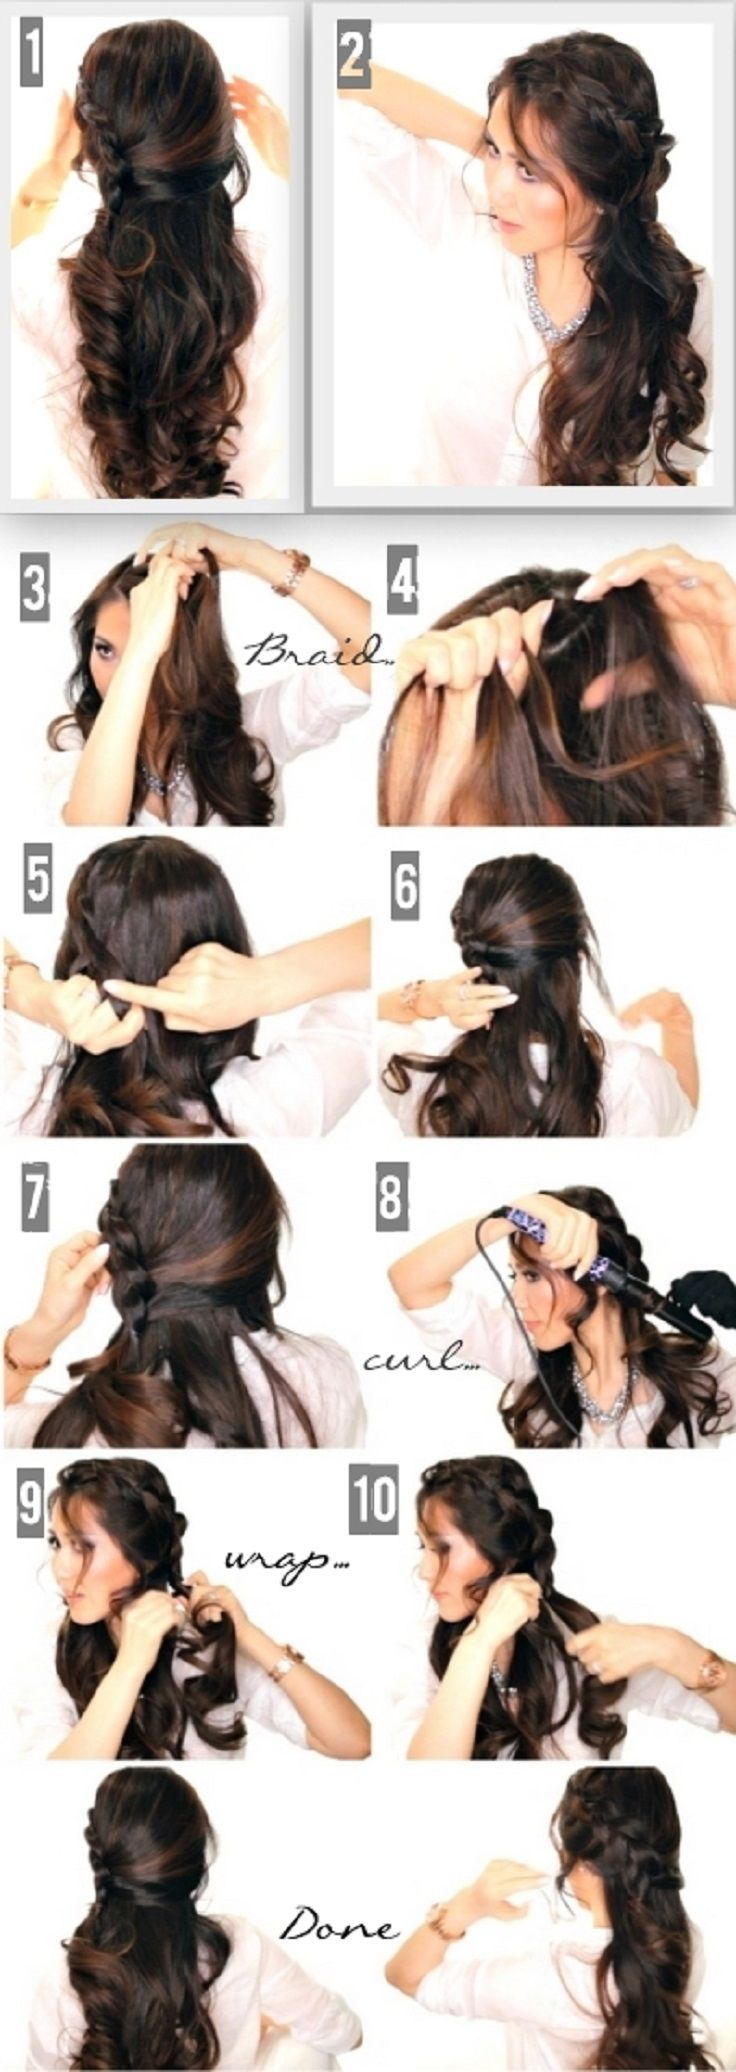 Top 10 Half Up Half Down Hair Tutorials You Must Have: Hairstyles ...